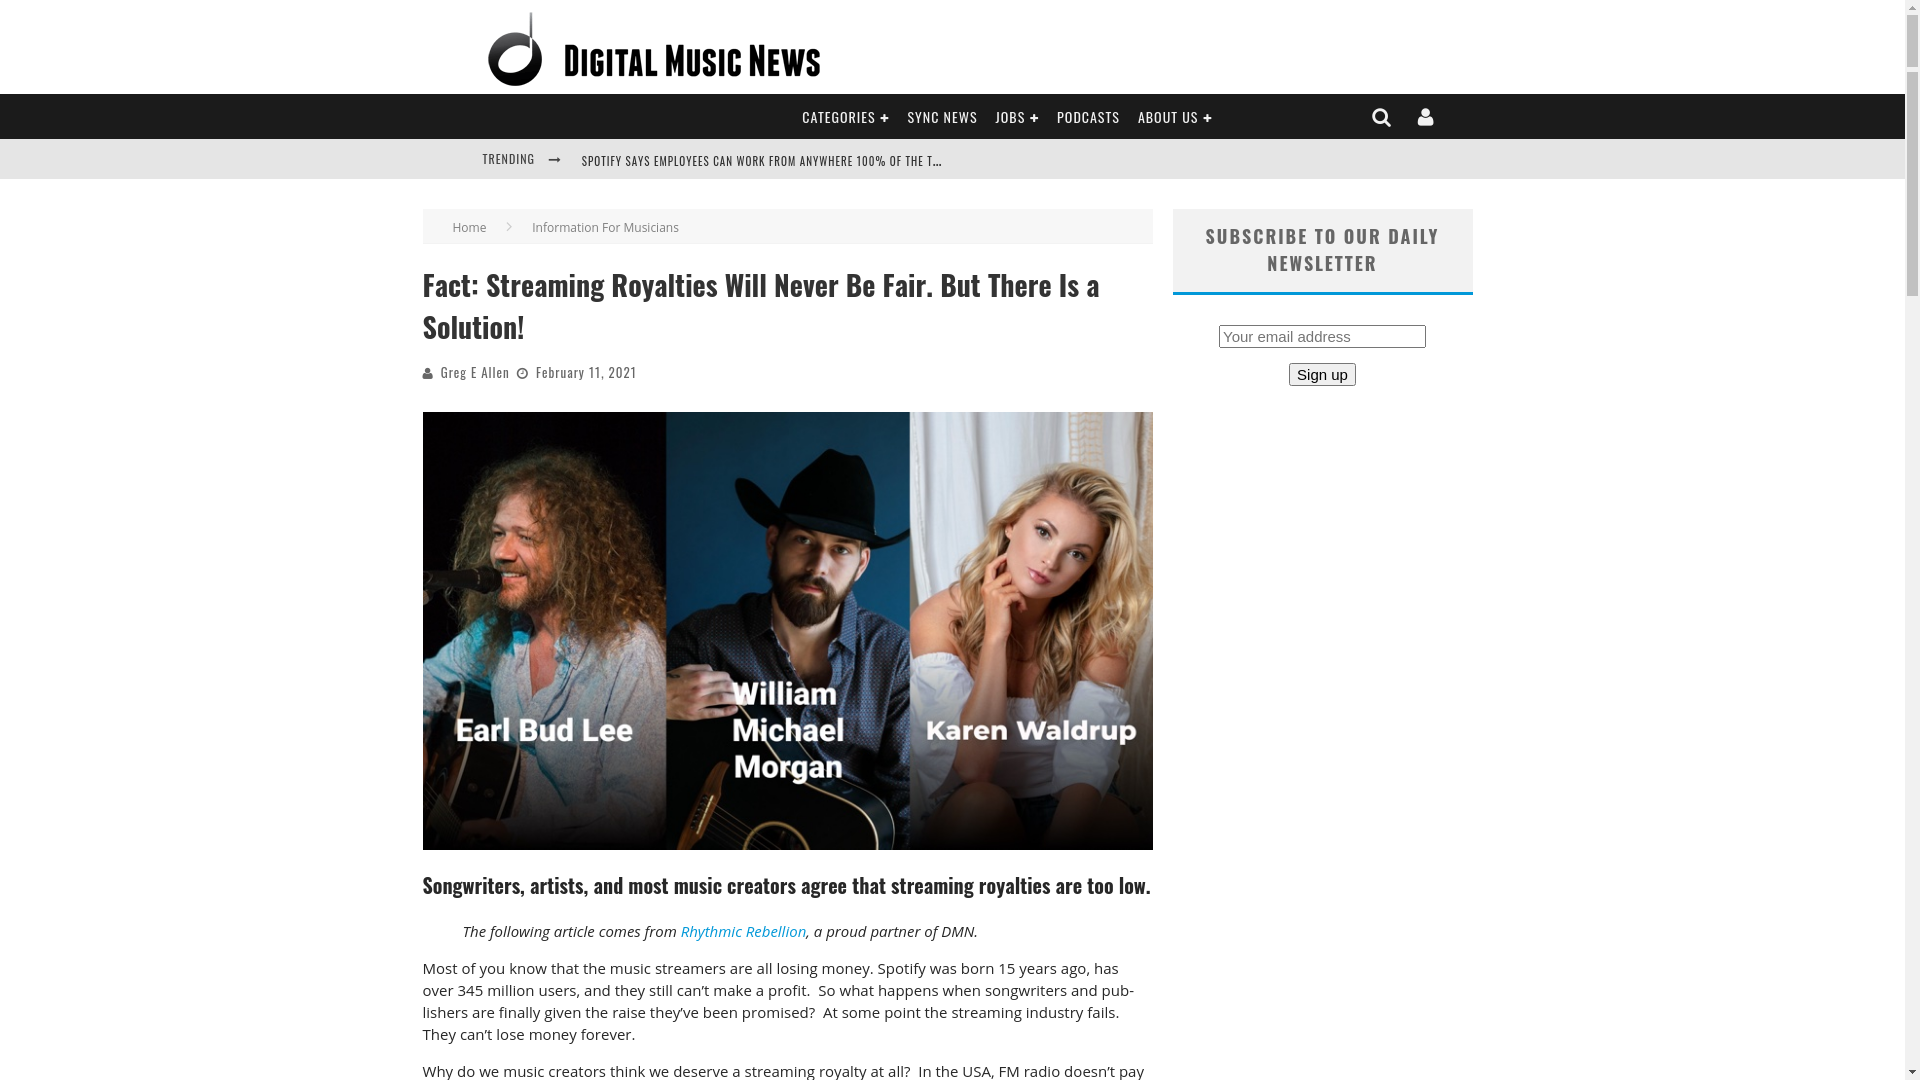 Fairness Rocks News Fact: Streaming Royalties Will Never Be Fair. But There Is a Solution!